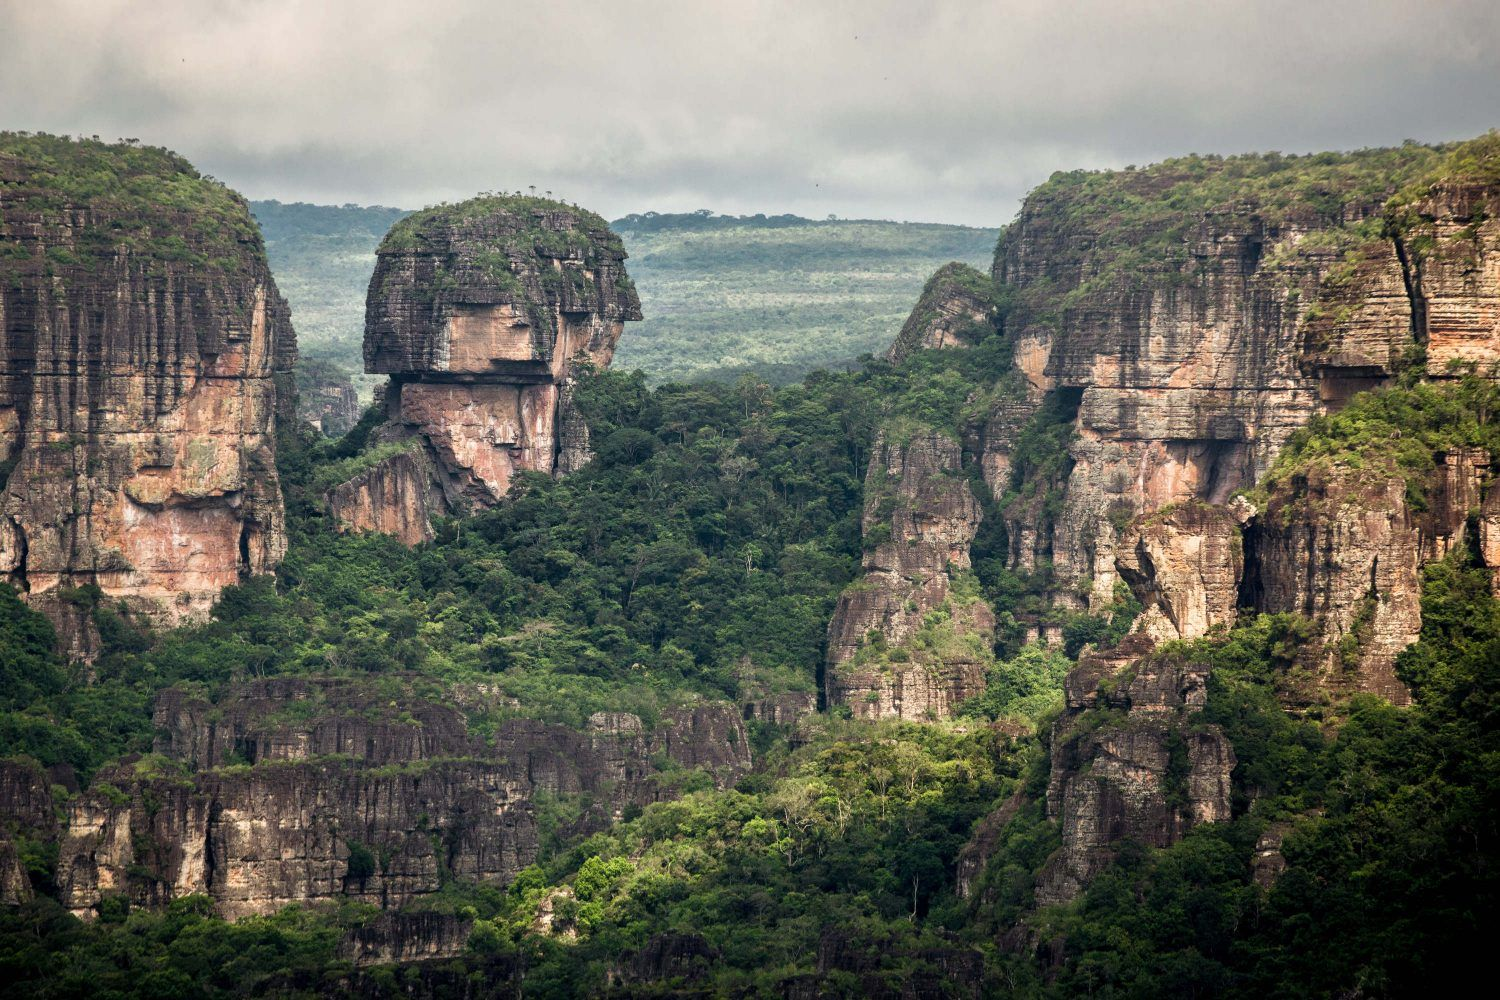 Colombia has the world's largest tropical rainforest